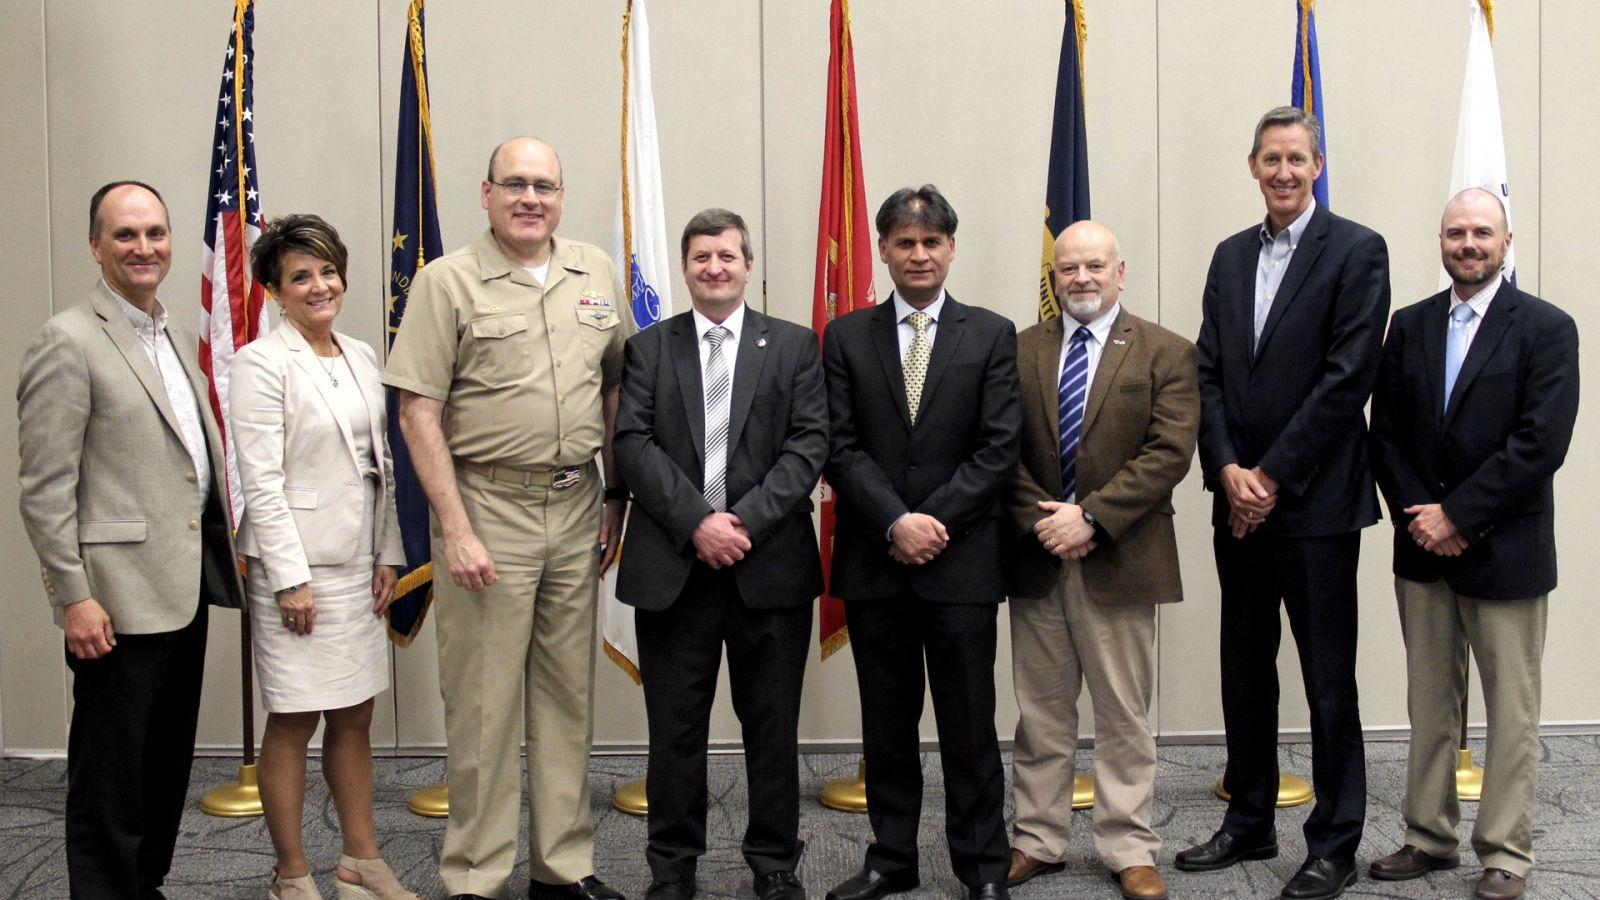 NSWC Crane formally announced its Expeditionary Warfare Systems Engineering Master's Degree program at a reception on Thursday, May 17th, at the WestGate Academy Conference and Training Center in Crane, Indiana. (Photo by NSWC Crane Corporate Communications)